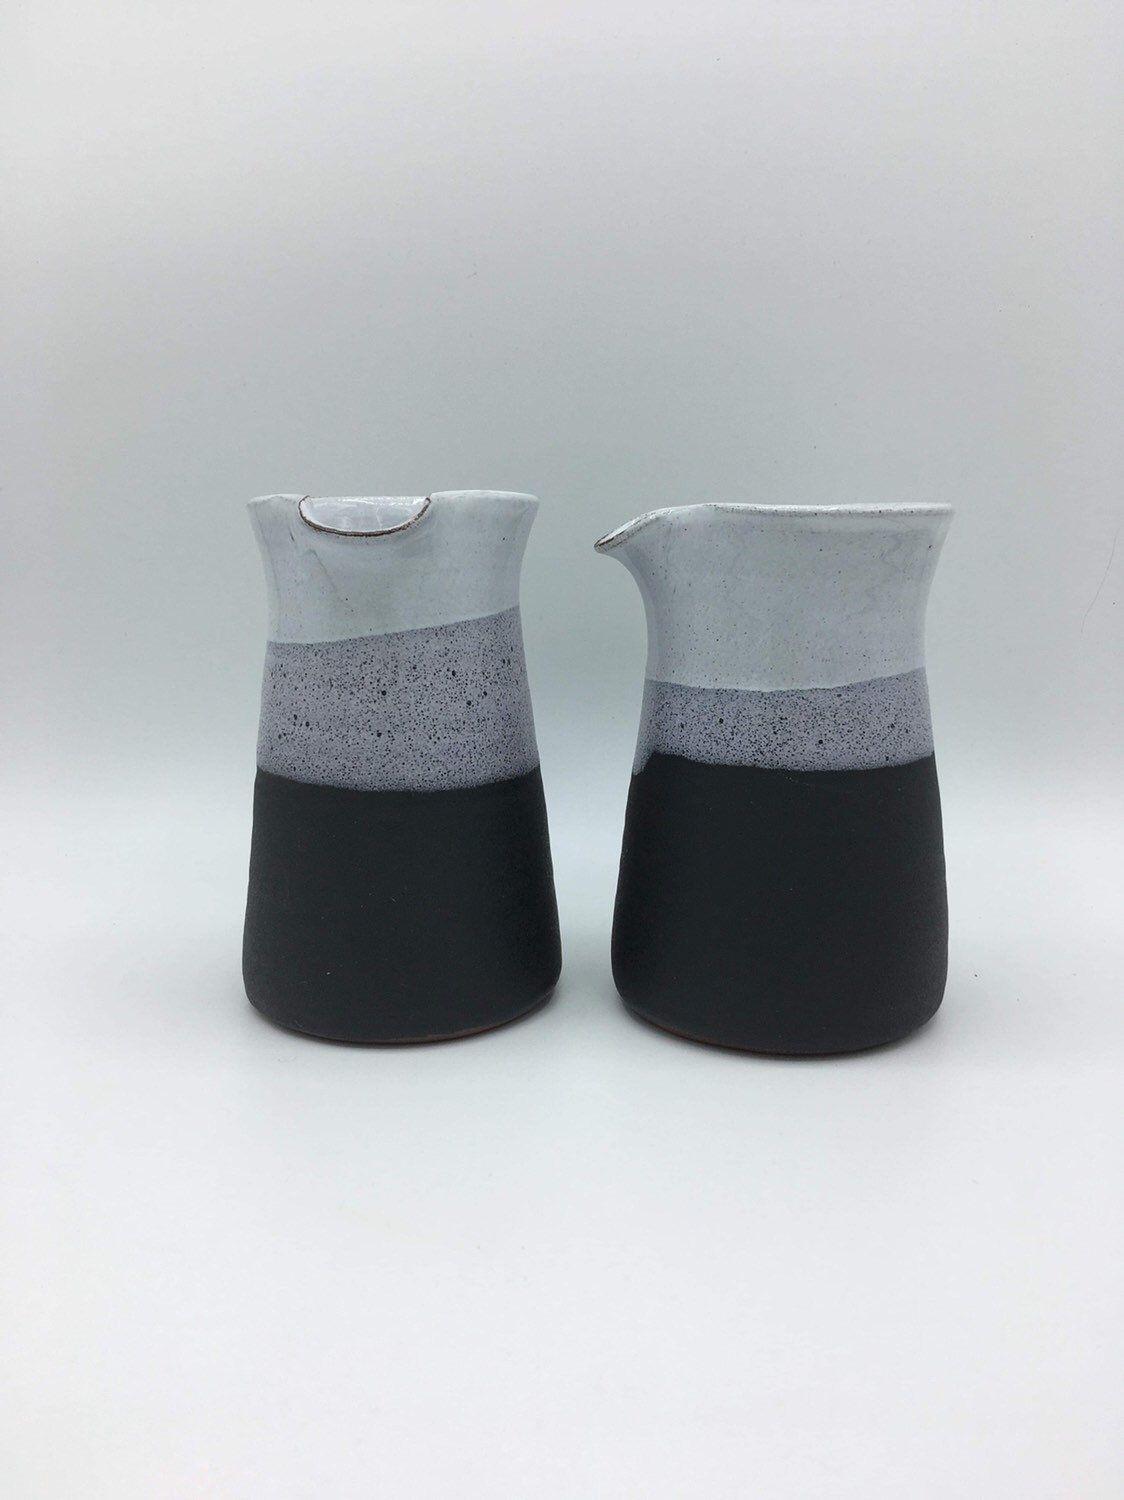 Excited To Share This Item From My Etsy Shop Black And White Ceramic Milk Jug Handmade Pottery Housewares White Bowls Handmade Pottery Handmade Ceramics